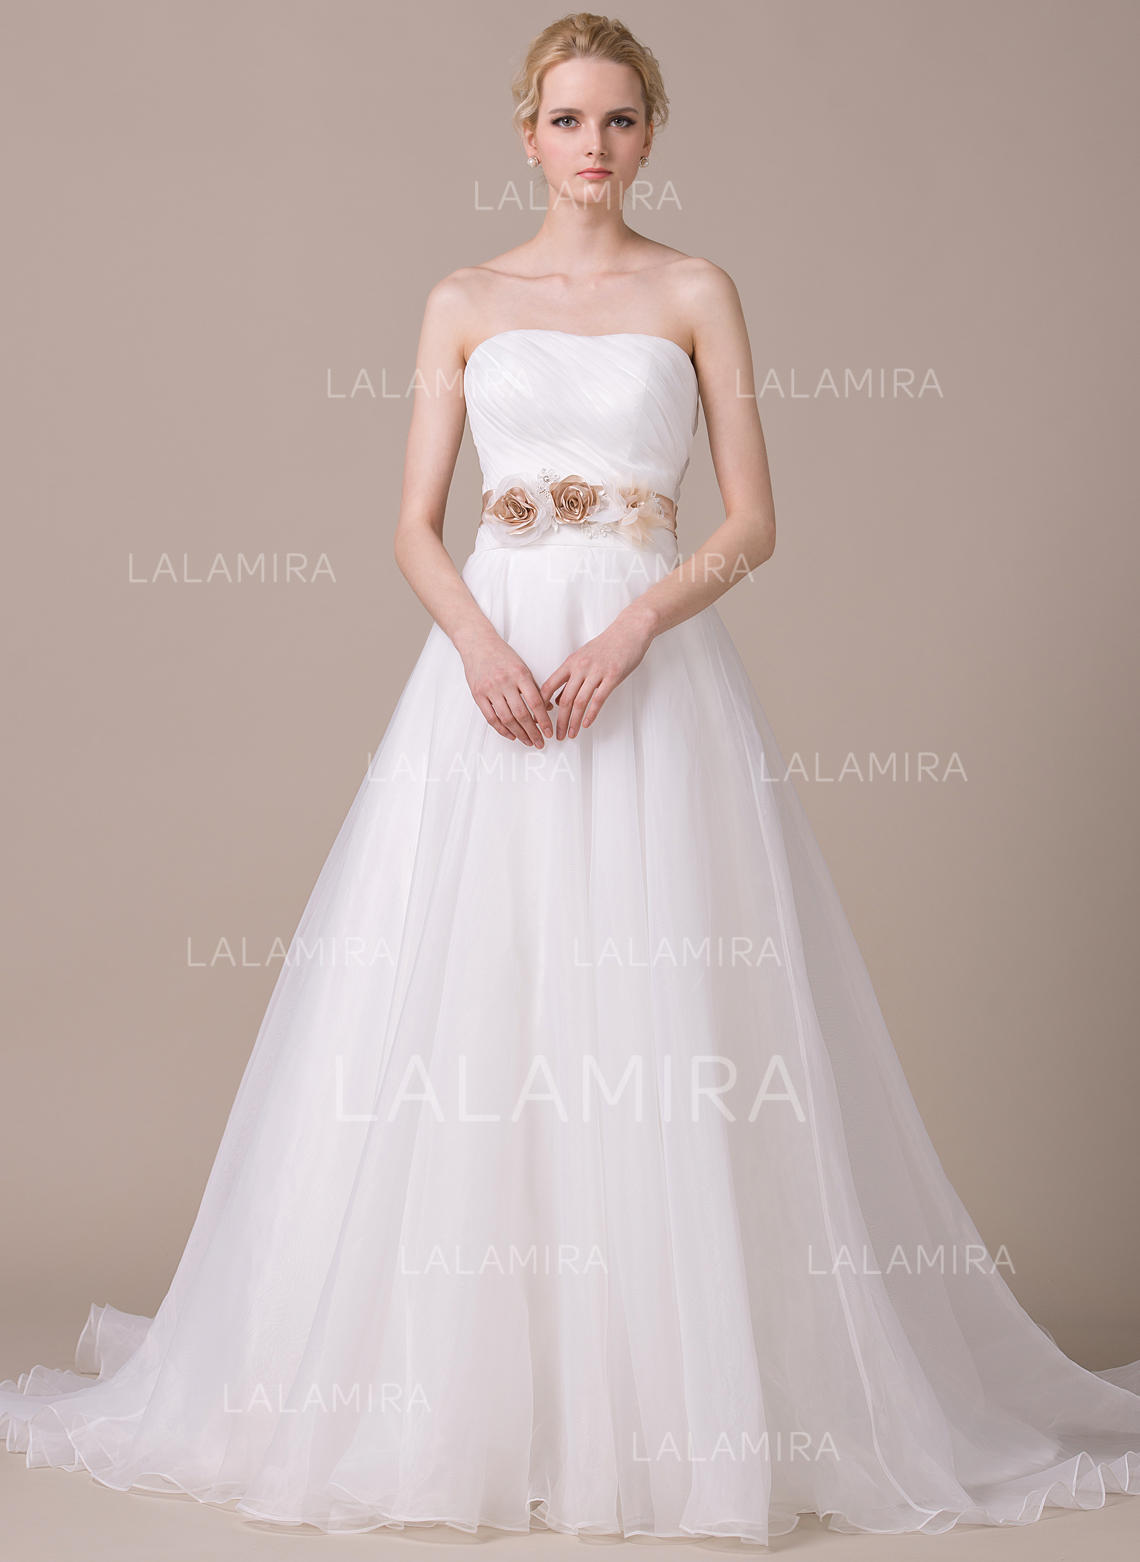 Sweetheart Ball-Gown Wedding Dresses Organza Ruffle Sash Beading Flower(s)  Sequins Bow. Loading zoom c997908be